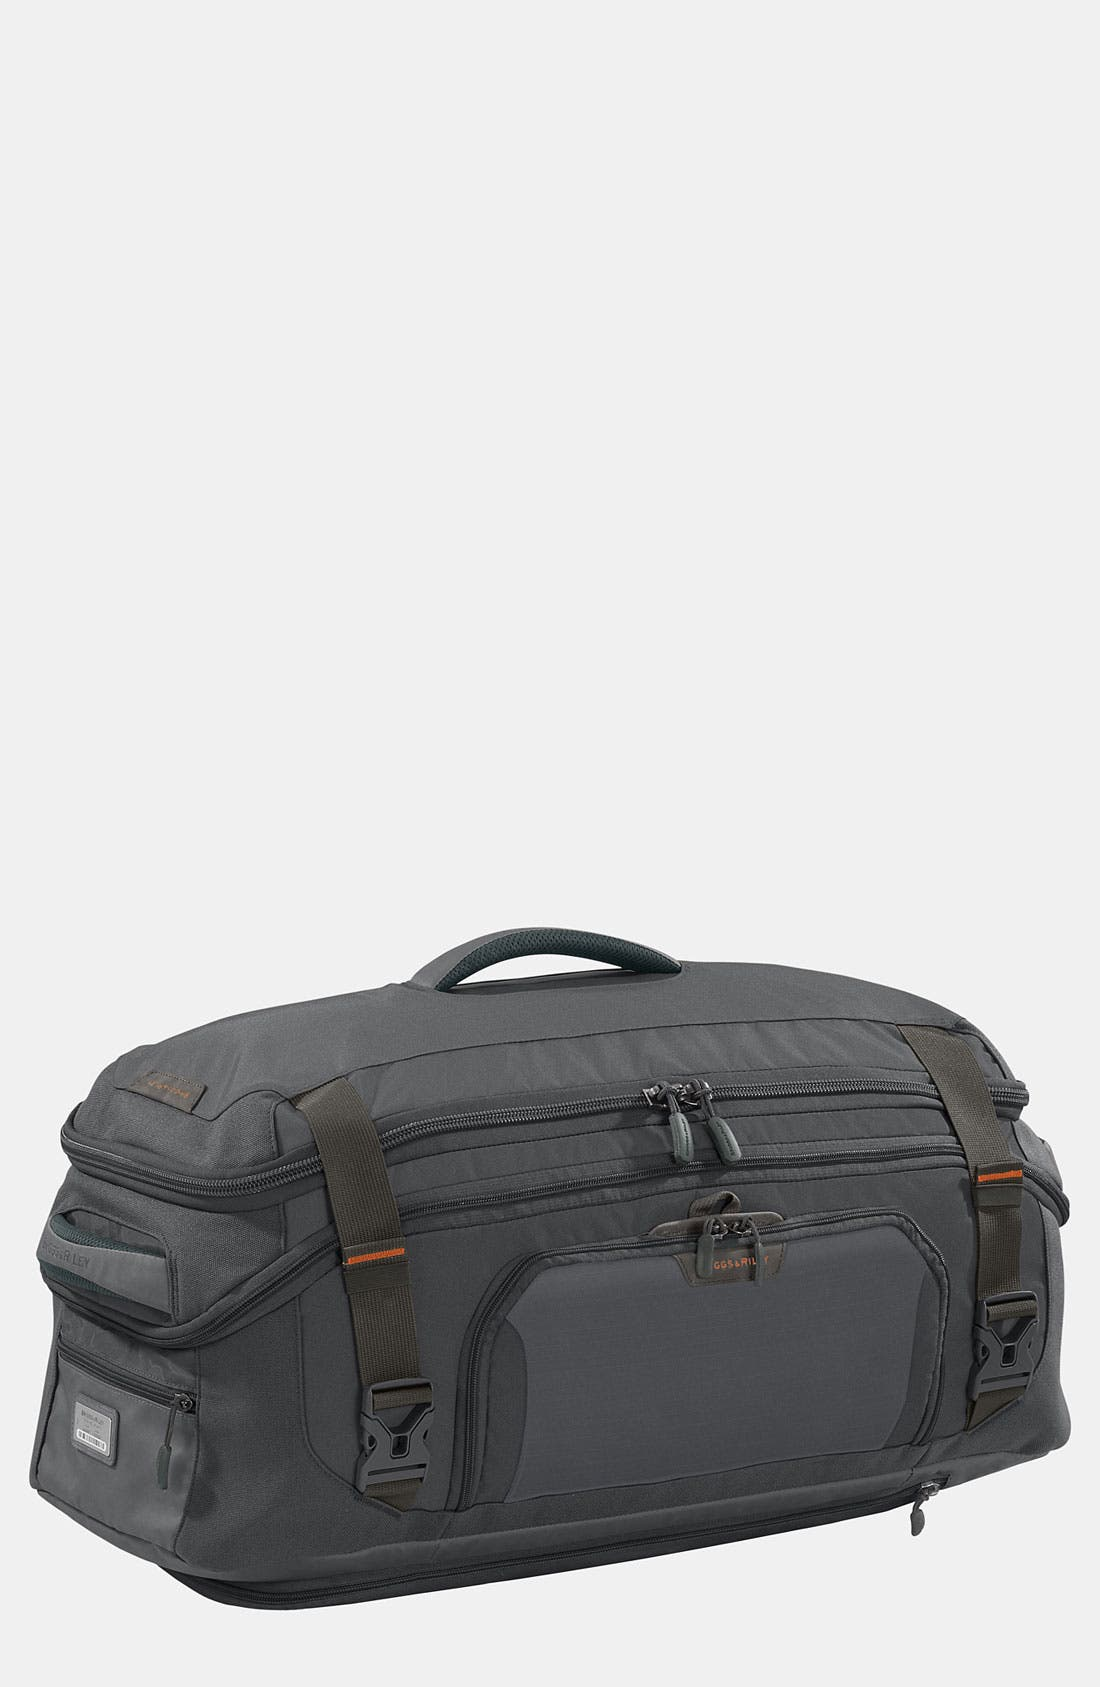 Main Image - Briggs & Riley 'Exchange' Expandable Duffel Bag (26 inch)